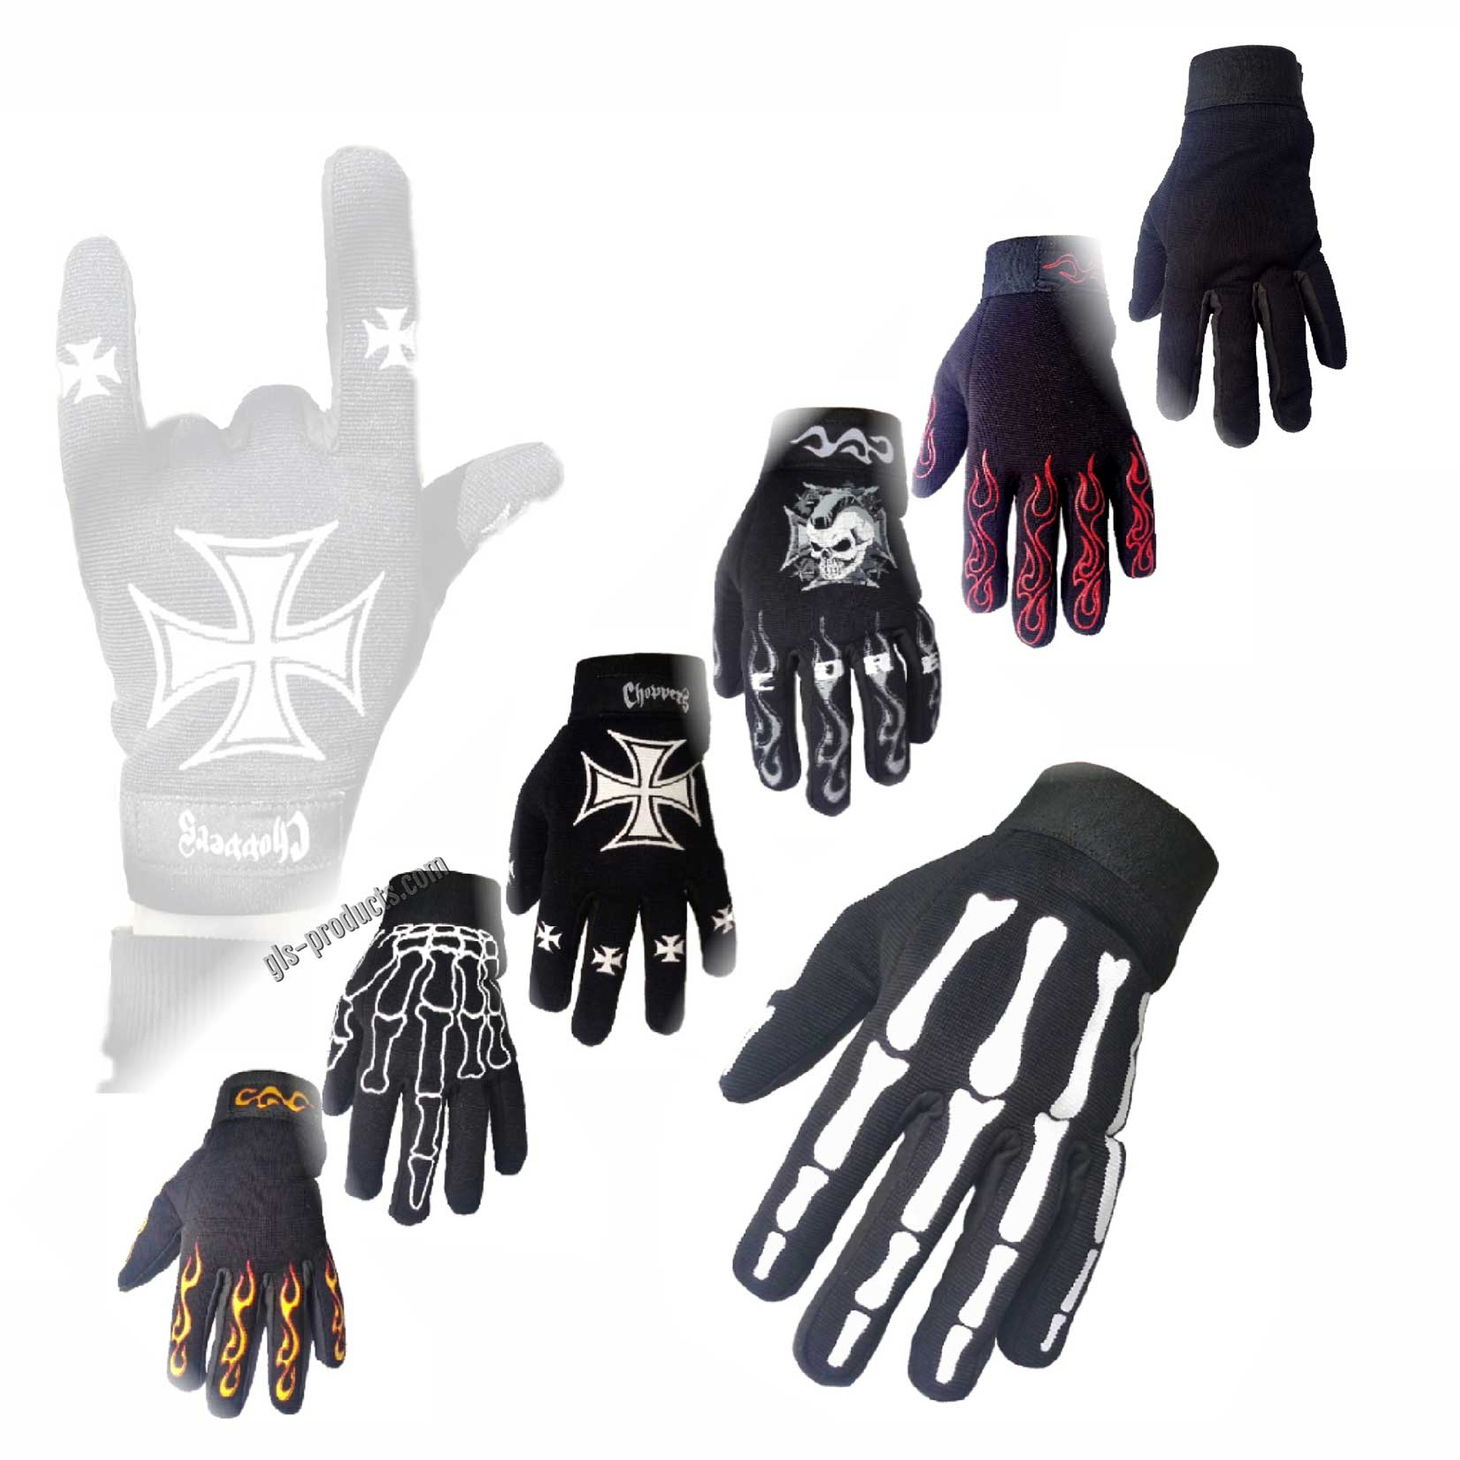 Mechanic Gloves, Flexible Neoprene Gloves